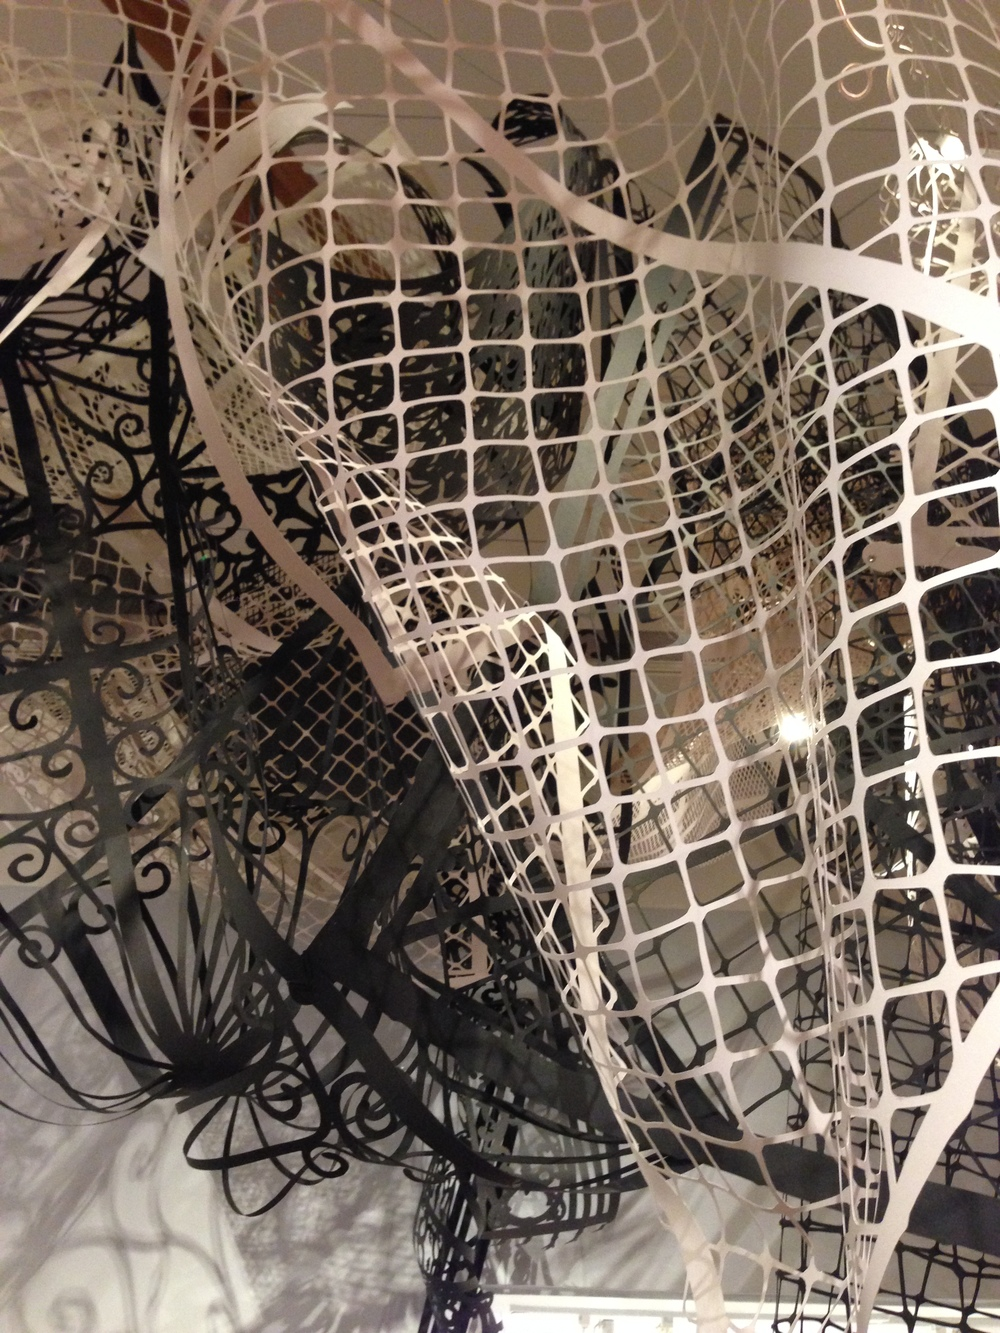 MARGARET GRIFFITH, Commonwealth, 2015, installation at the Craft and Folk Art Museum, hand cut paper, dimensions variable.